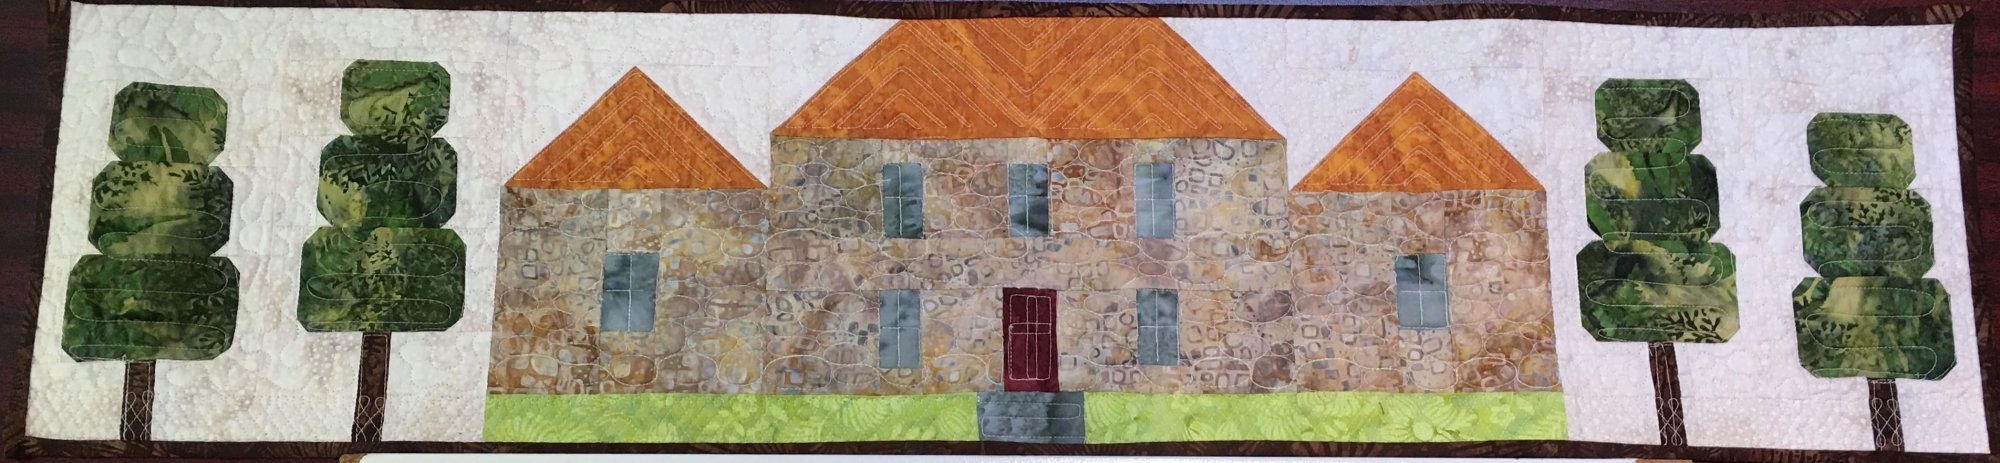 Old Stone Home Fabric Pack